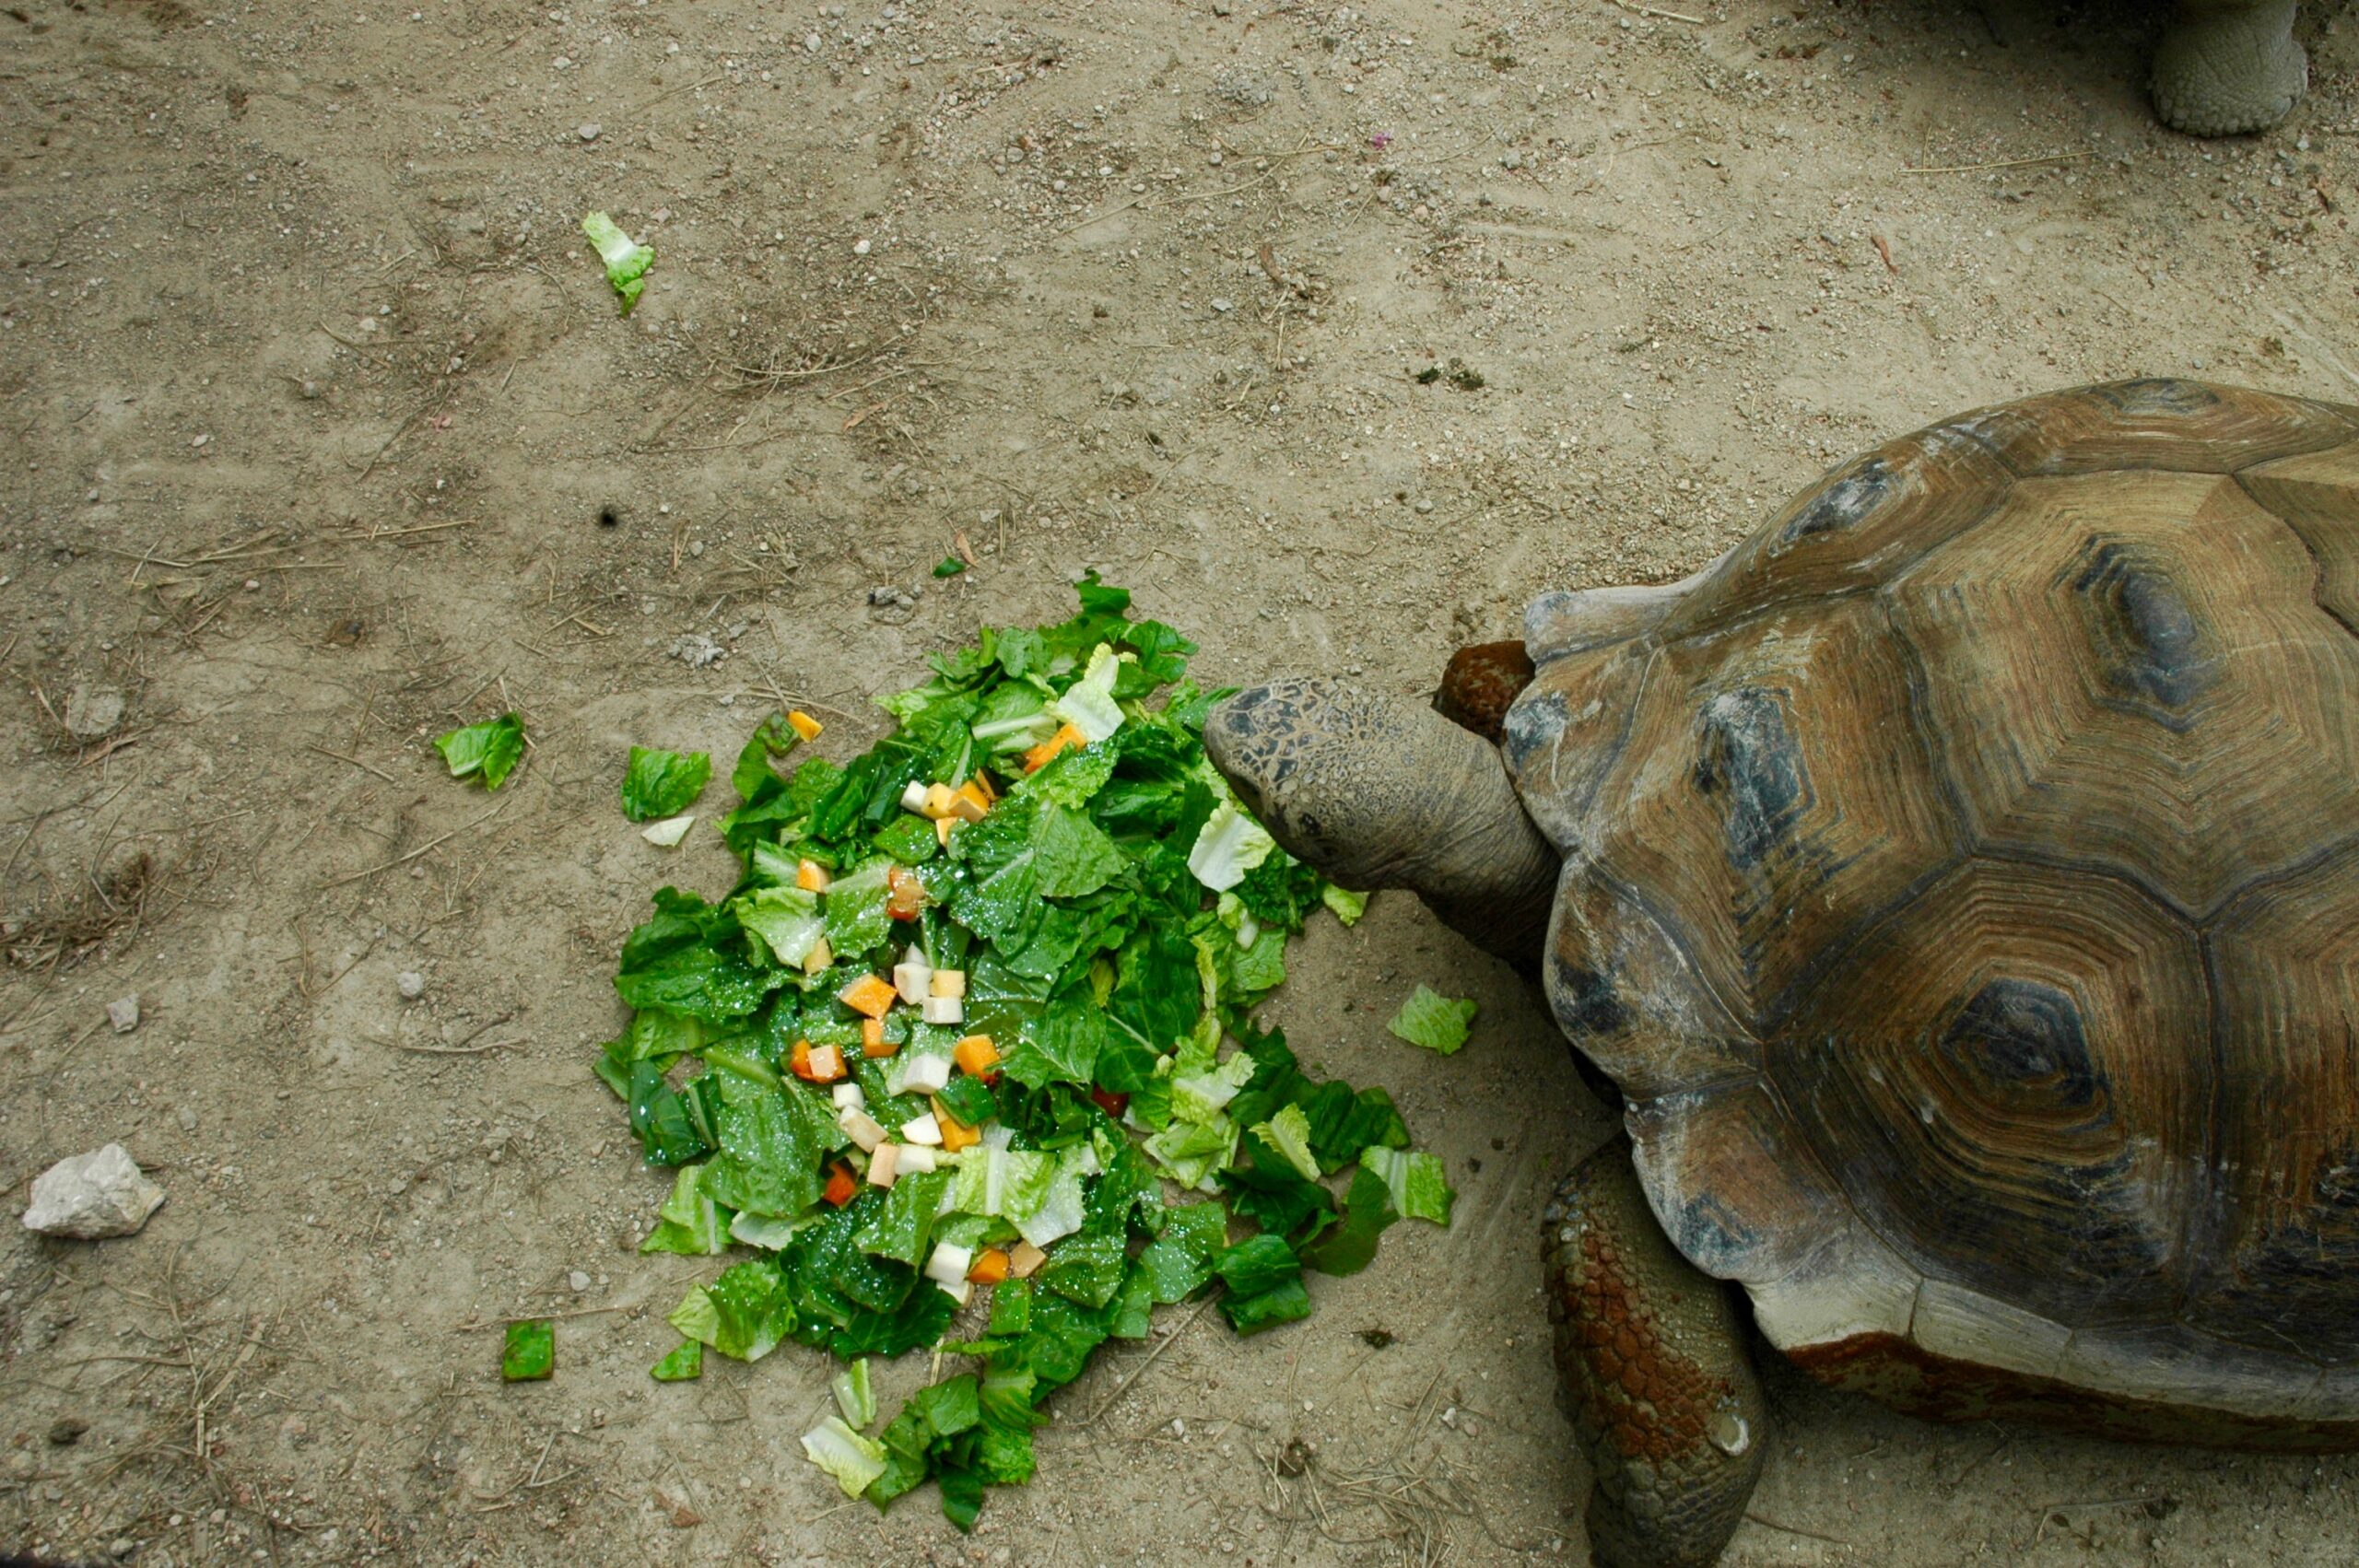 Galapagos Tortoise Eating Salad